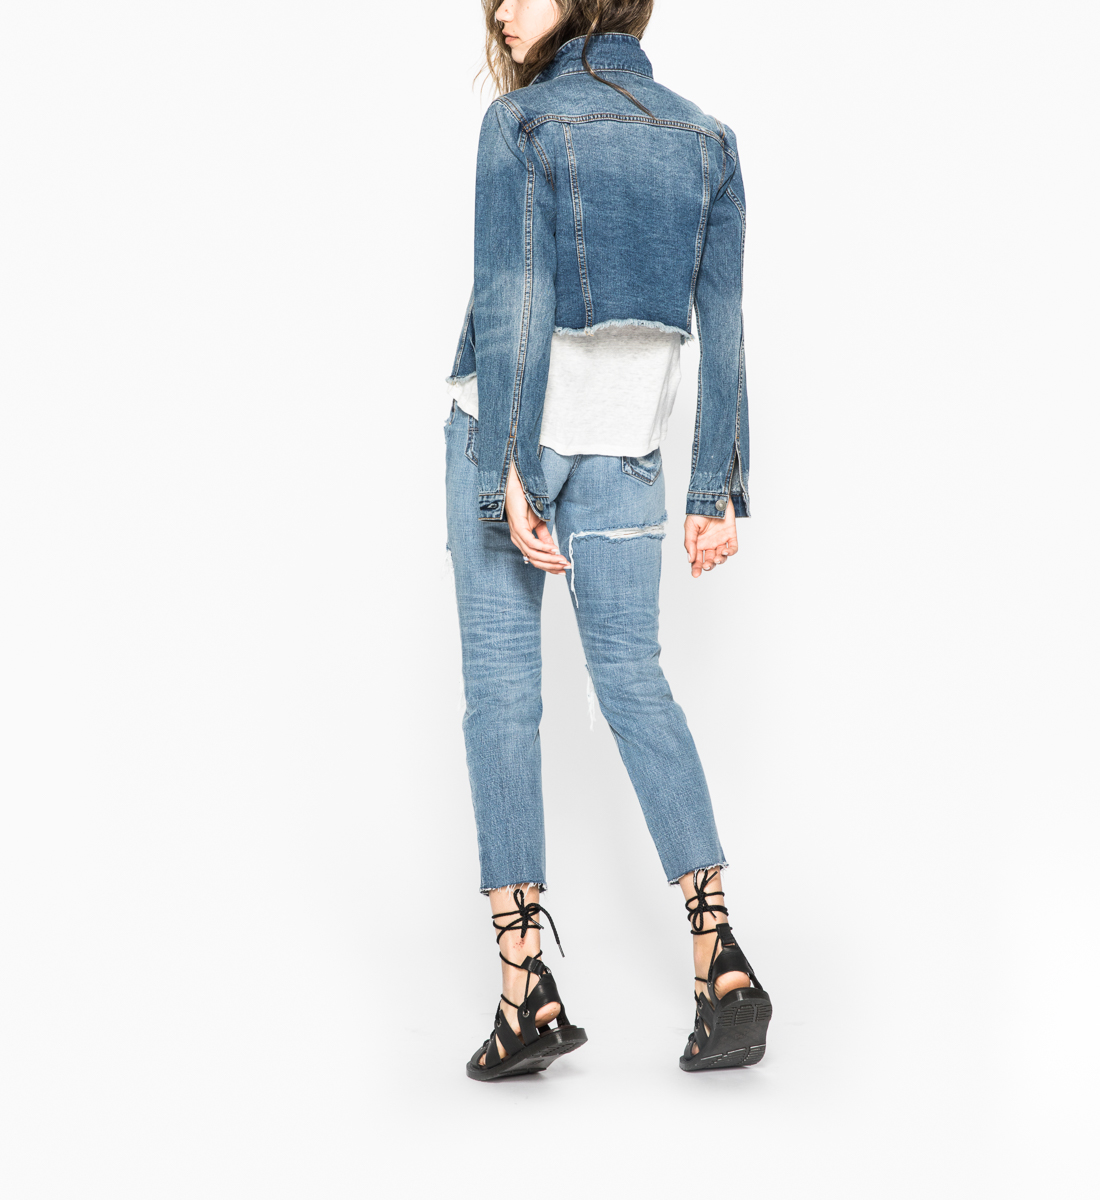 Shelby - Cropped Girlfriend Denim Jacket With Frayed Hem, , hi-res